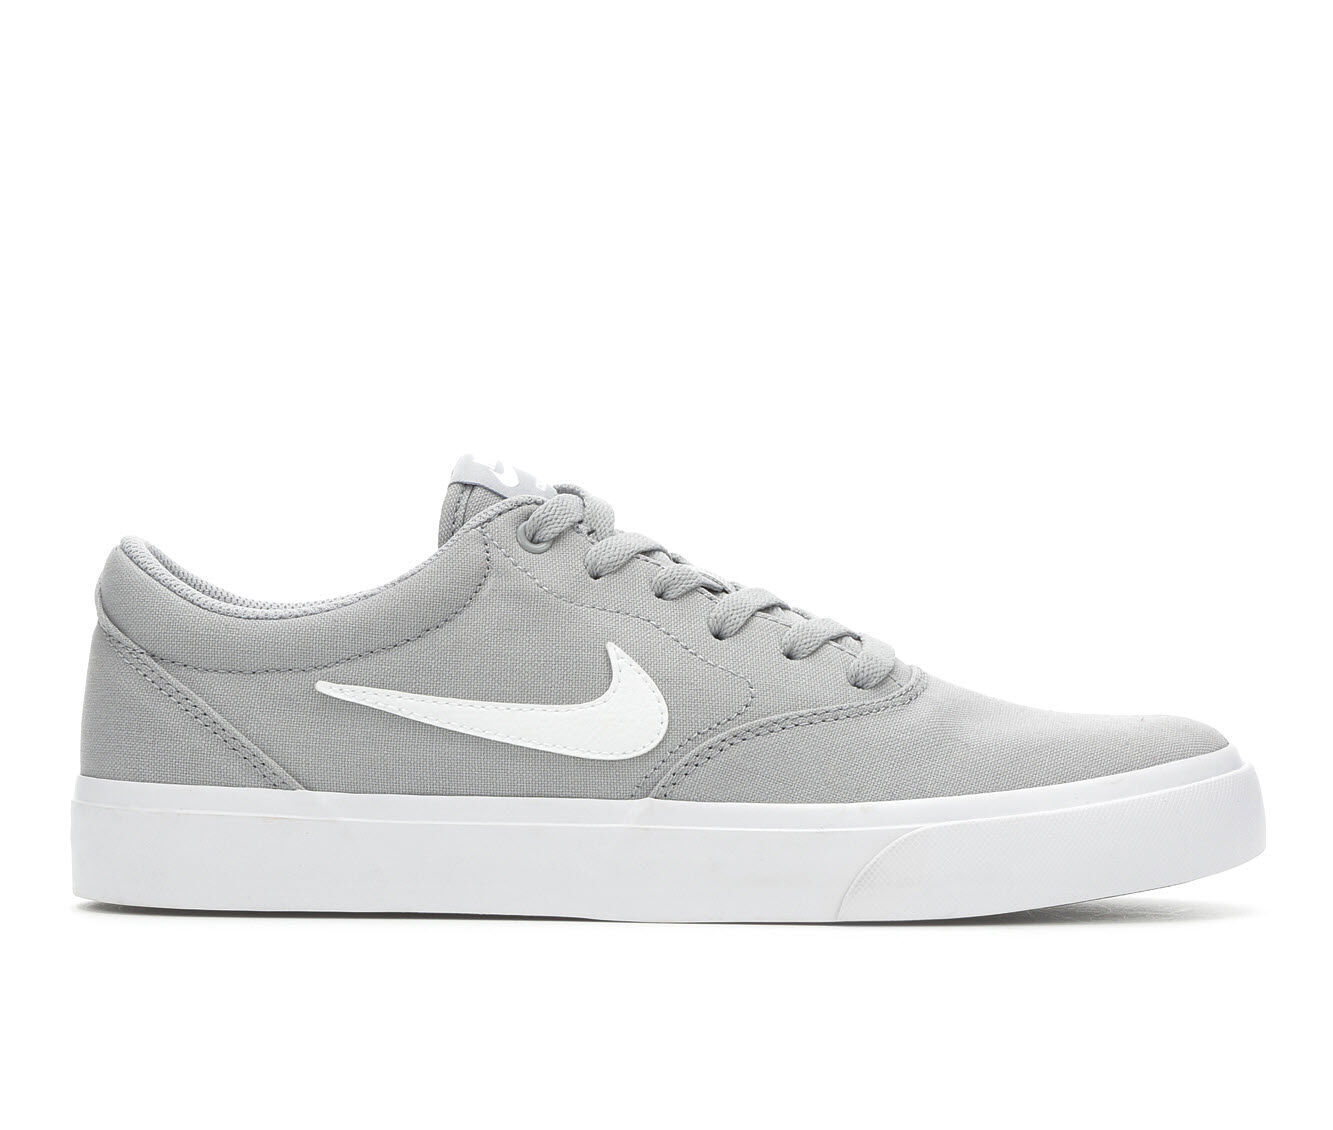 Reasonable Price Men's Nike SB Charge Skate Shoes Gry/Wht 003